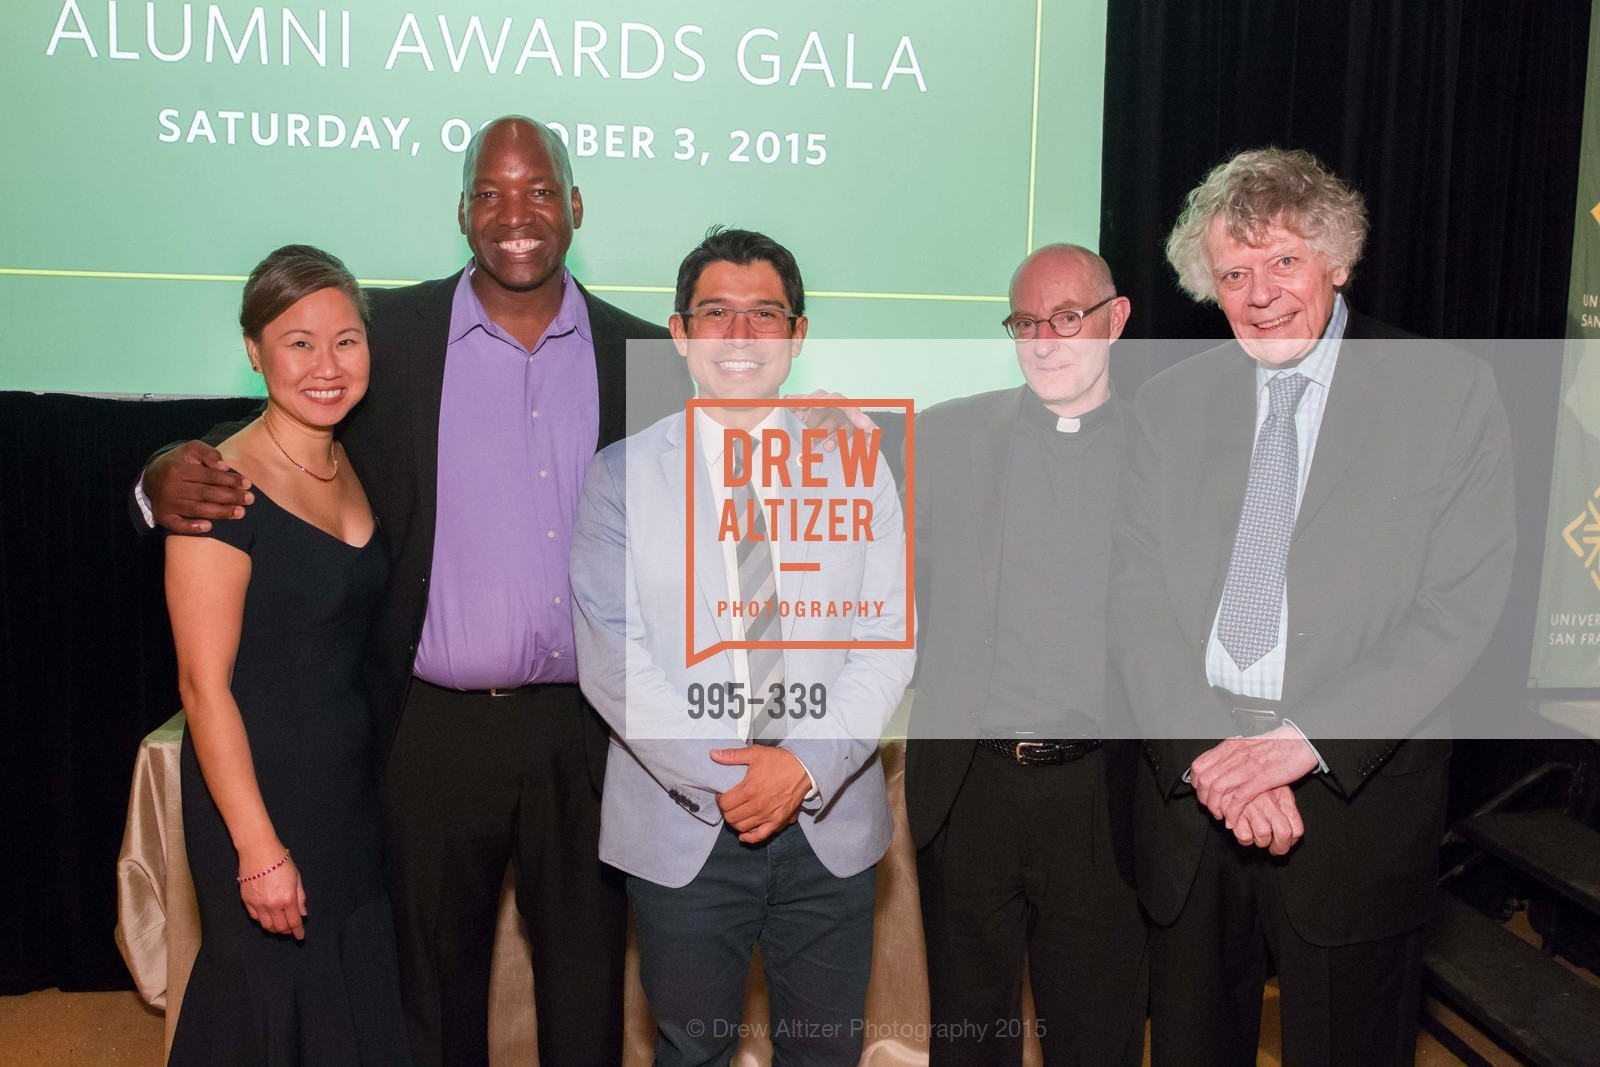 Doris Cheng, Aaron Horn, Carlos Menchaca, Paul Fitzgerald, Gordon Getty, University of San Francisco Alumni Awards Gala 2015, University of San Francisco, October 2nd, 2015,Drew Altizer, Drew Altizer Photography, full-service agency, private events, San Francisco photographer, photographer california